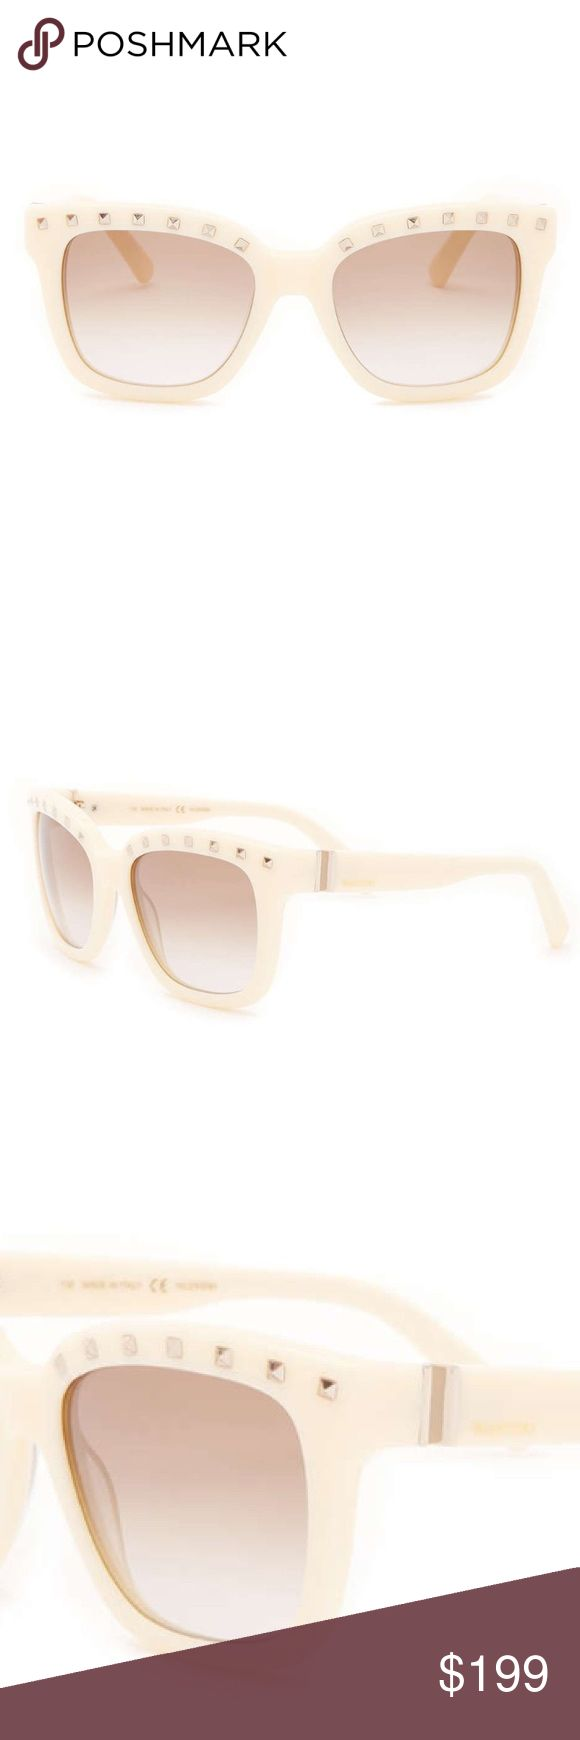 Valentino Studded Ivory Retro Sunglasses New With Tags - Women's Retro Valentino sunglasses with silver tone studded browline, acetate Ivory frames and Ivory gradient lenses with 100% UV Protection. Case and cleaning cloth included. Will come in Valentino box. Made in Italy. Valentino Accessories Sunglasses